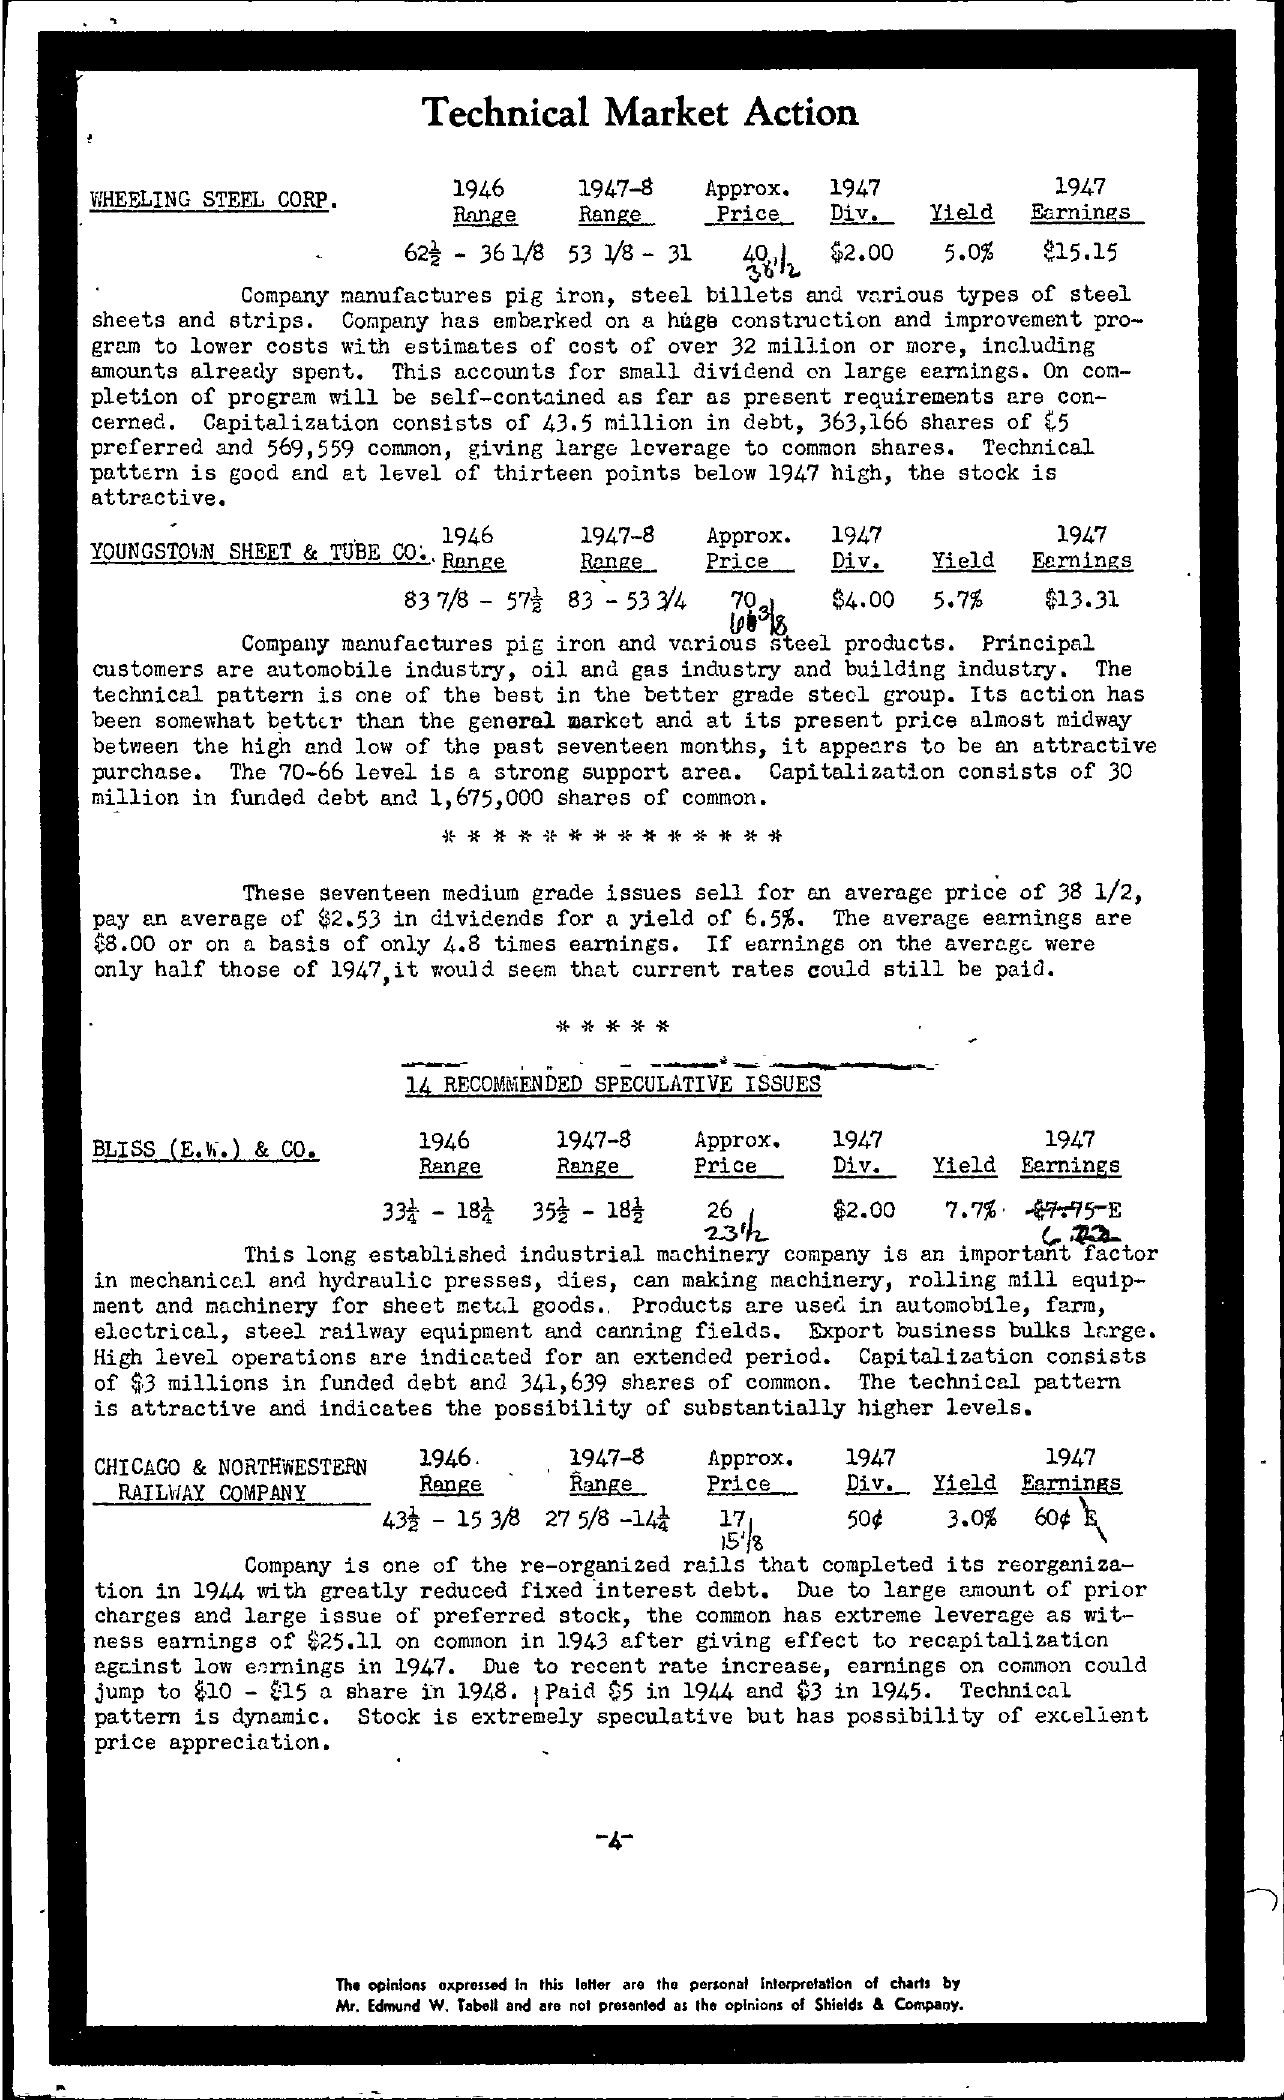 Tabell's Market Letter - February 11, 1948 - Page 4